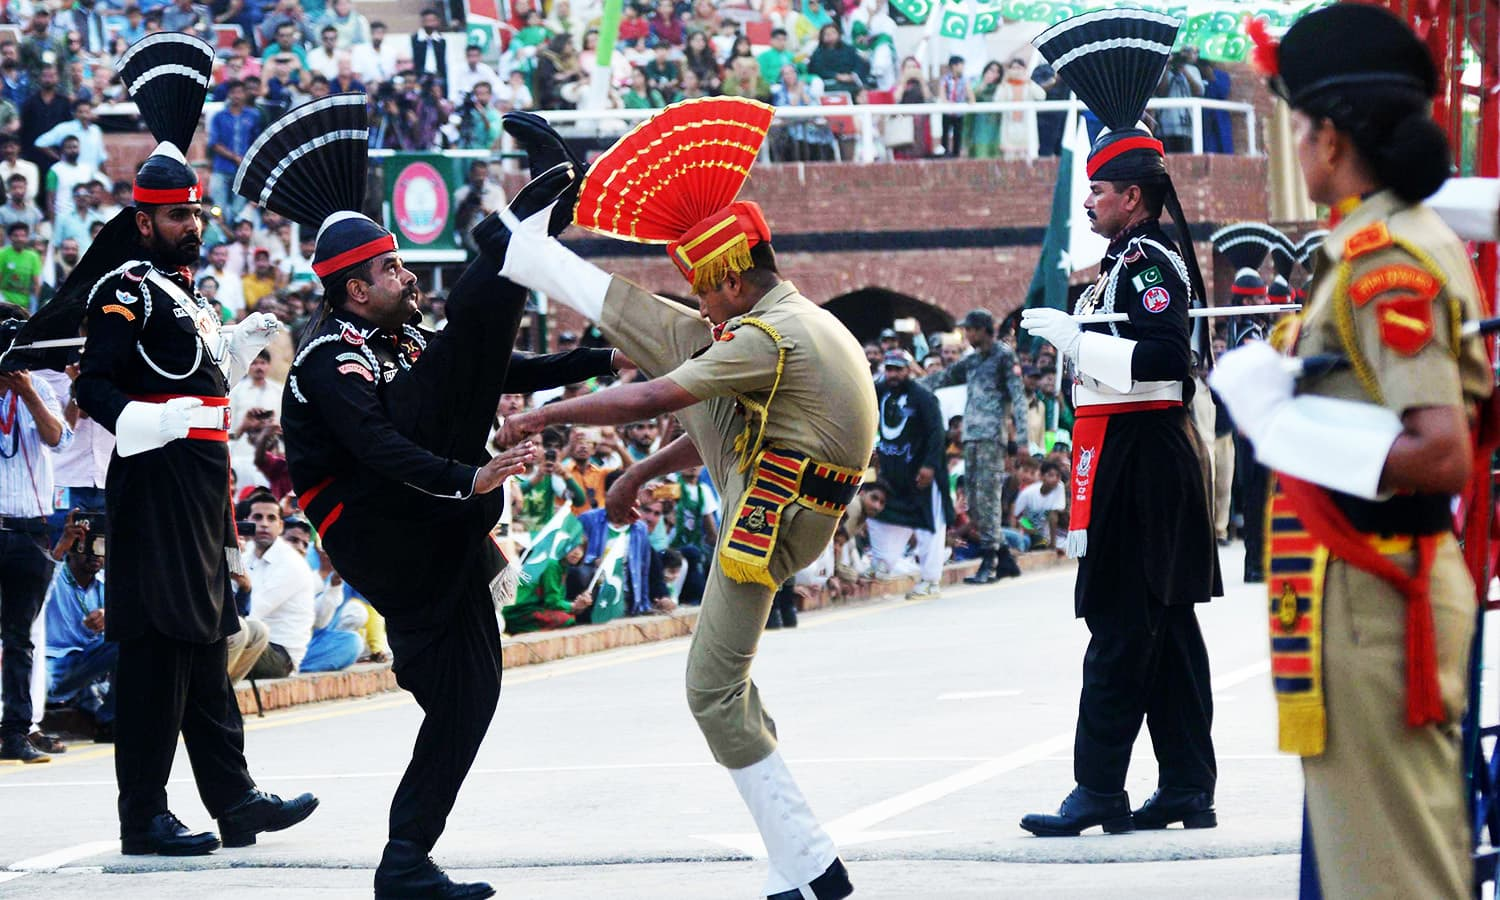 Pakistani Rangers and Indian Border Security Force personnel perform during the daily beating of the retreat ceremony at the India-Pakistan Wagah Border Post.—AFP